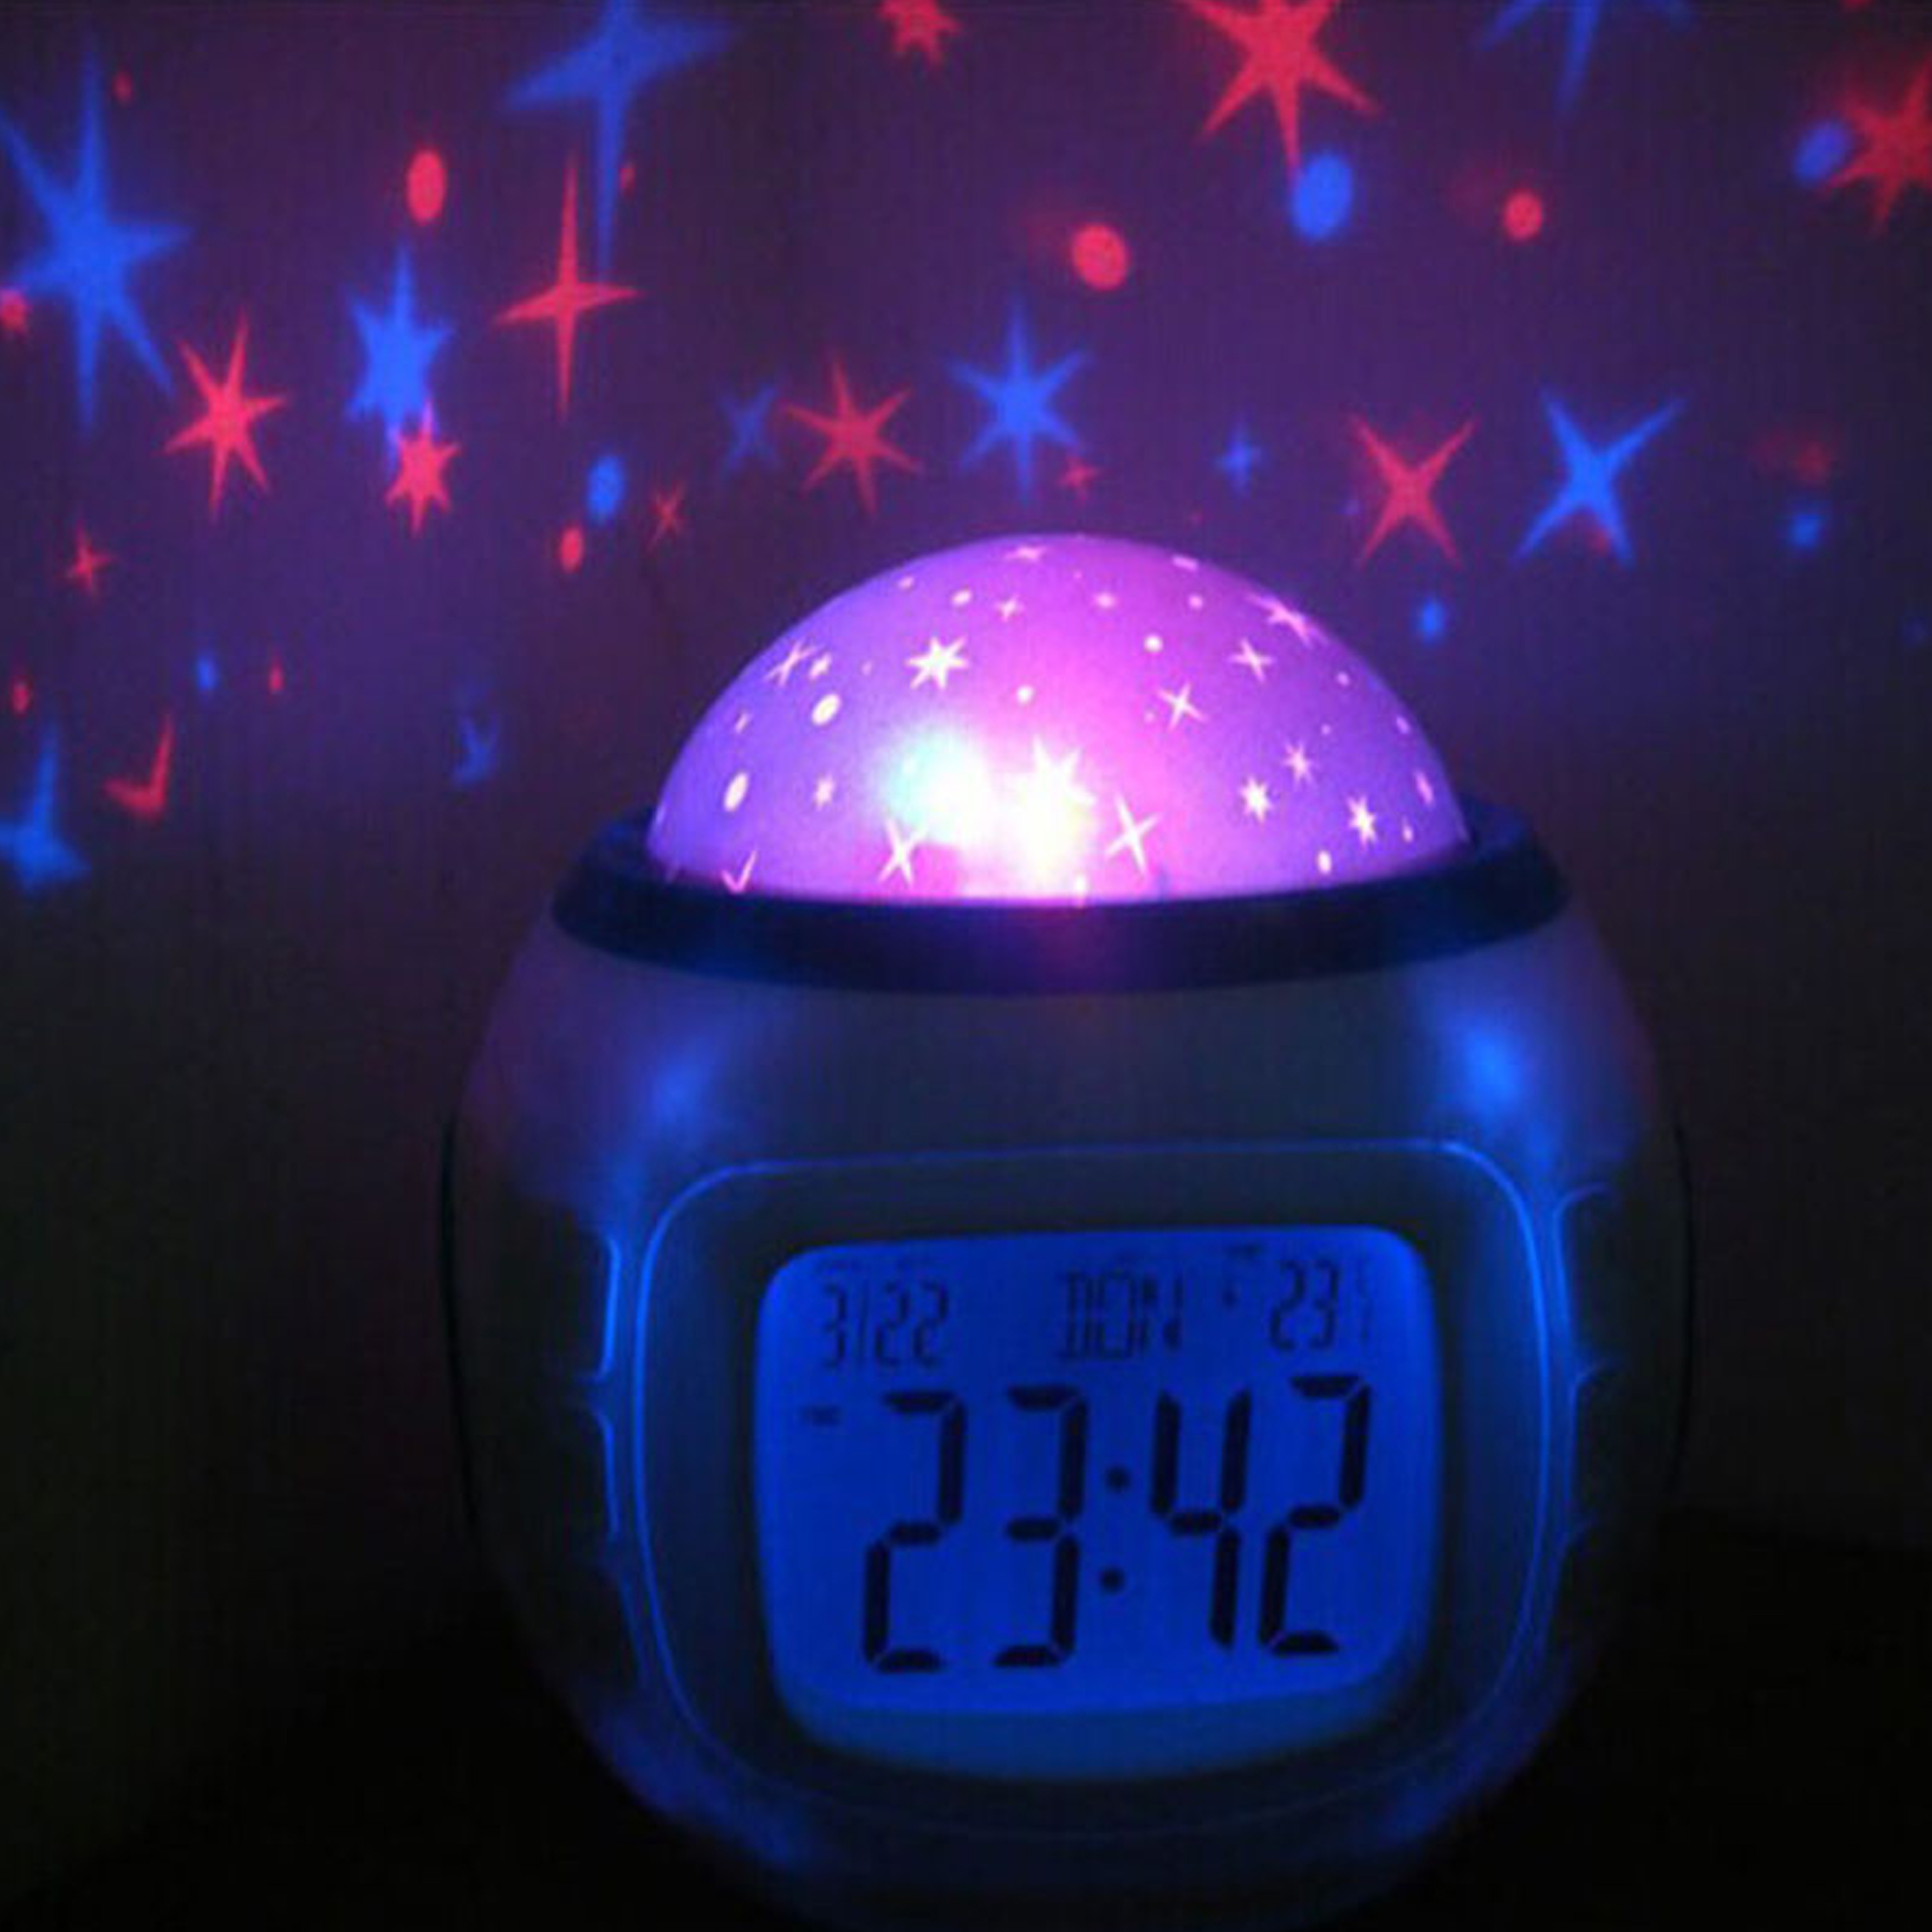 Dteck Children Baby Room Sky Star Night Light Projector Lamp Bedroom Music Alarm  Clock   Walmart com. Dteck Children Baby Room Sky Star Night Light Projector Lamp